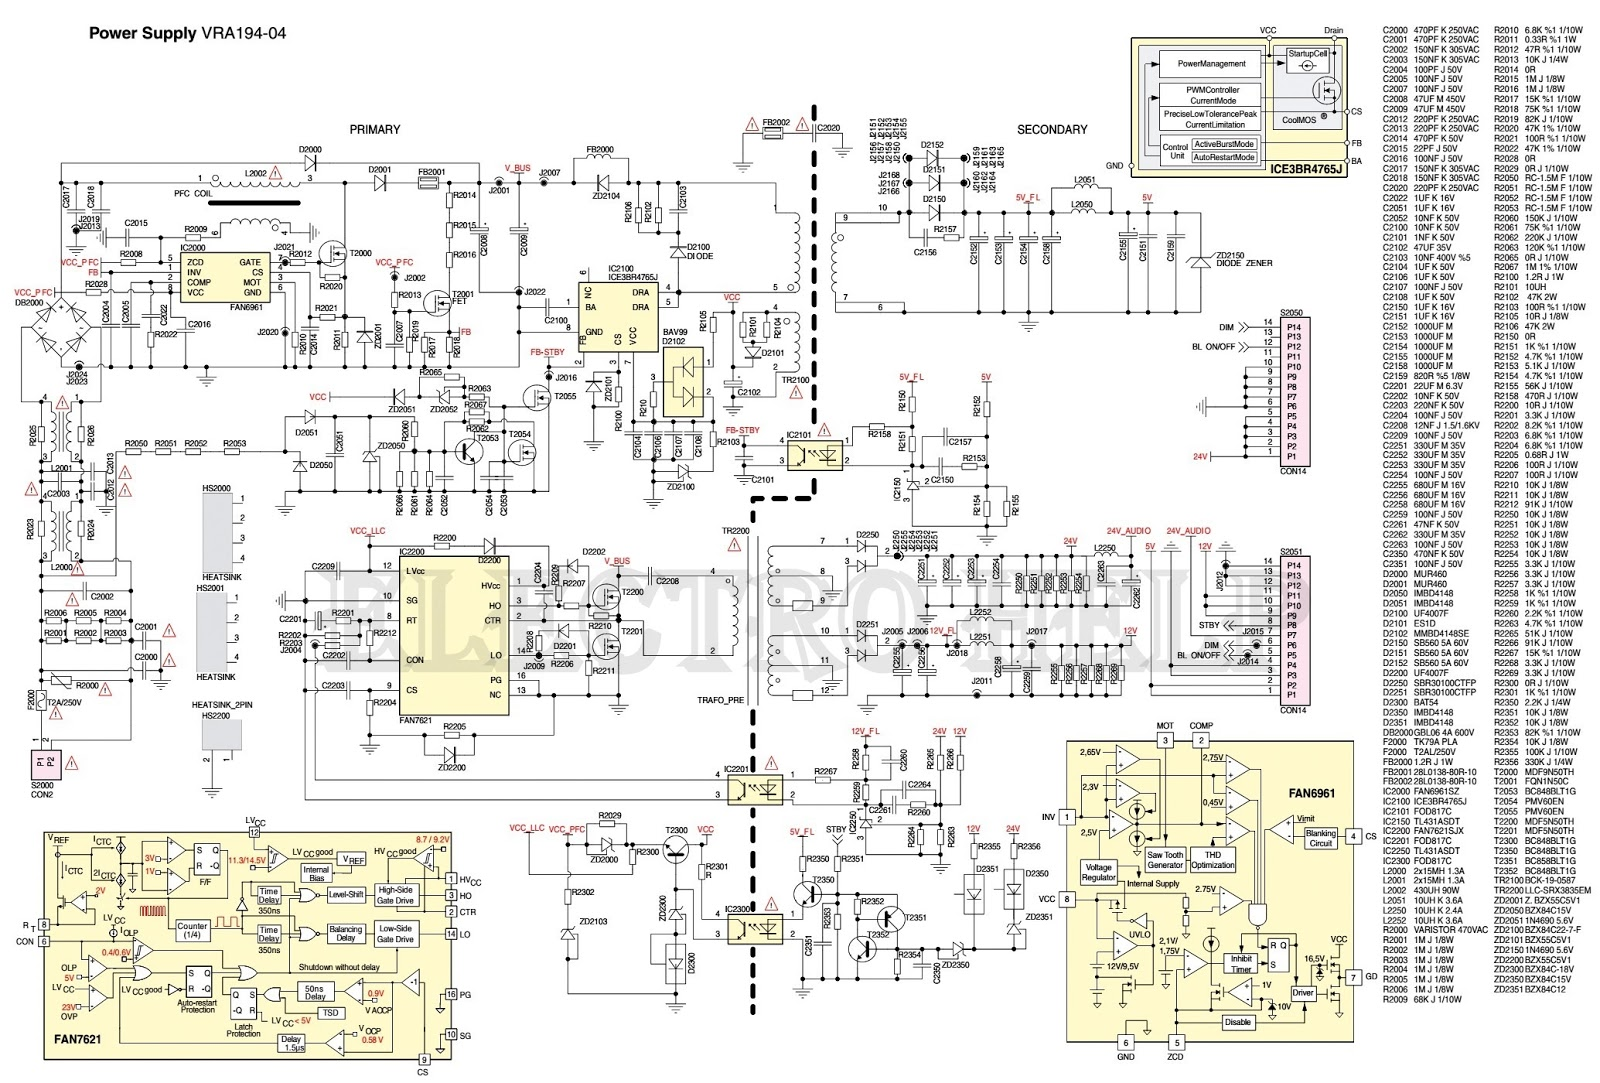 Led Tv Circuit Diagrams 23 Wiring Diagram Images 1 Powersupplycircuit Seekiccom Electro Help Grundig Lcd Power Supply Vra194 04 Smps